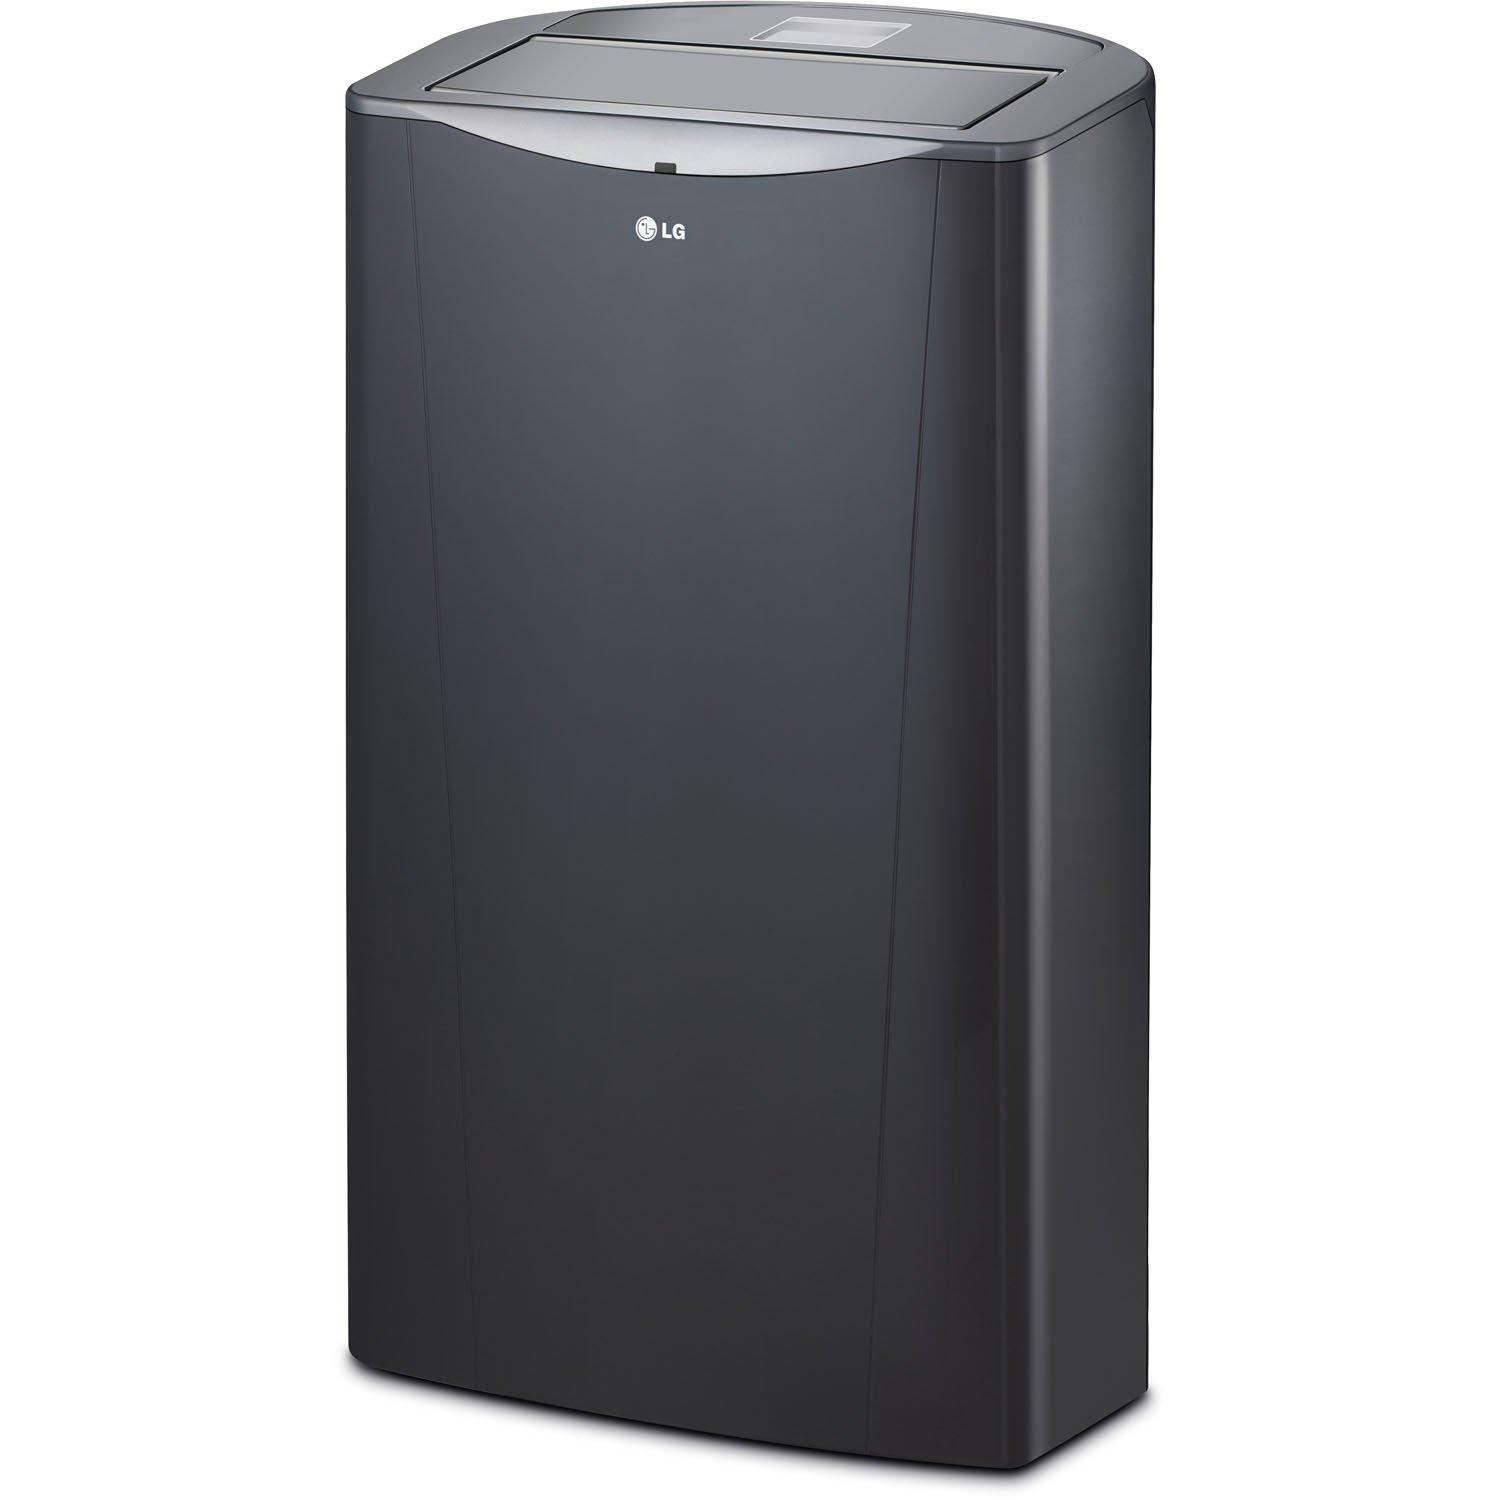 : LG Model: LP1414GXR Style: 14 000 BTU Portable Air Conditioner #53575E